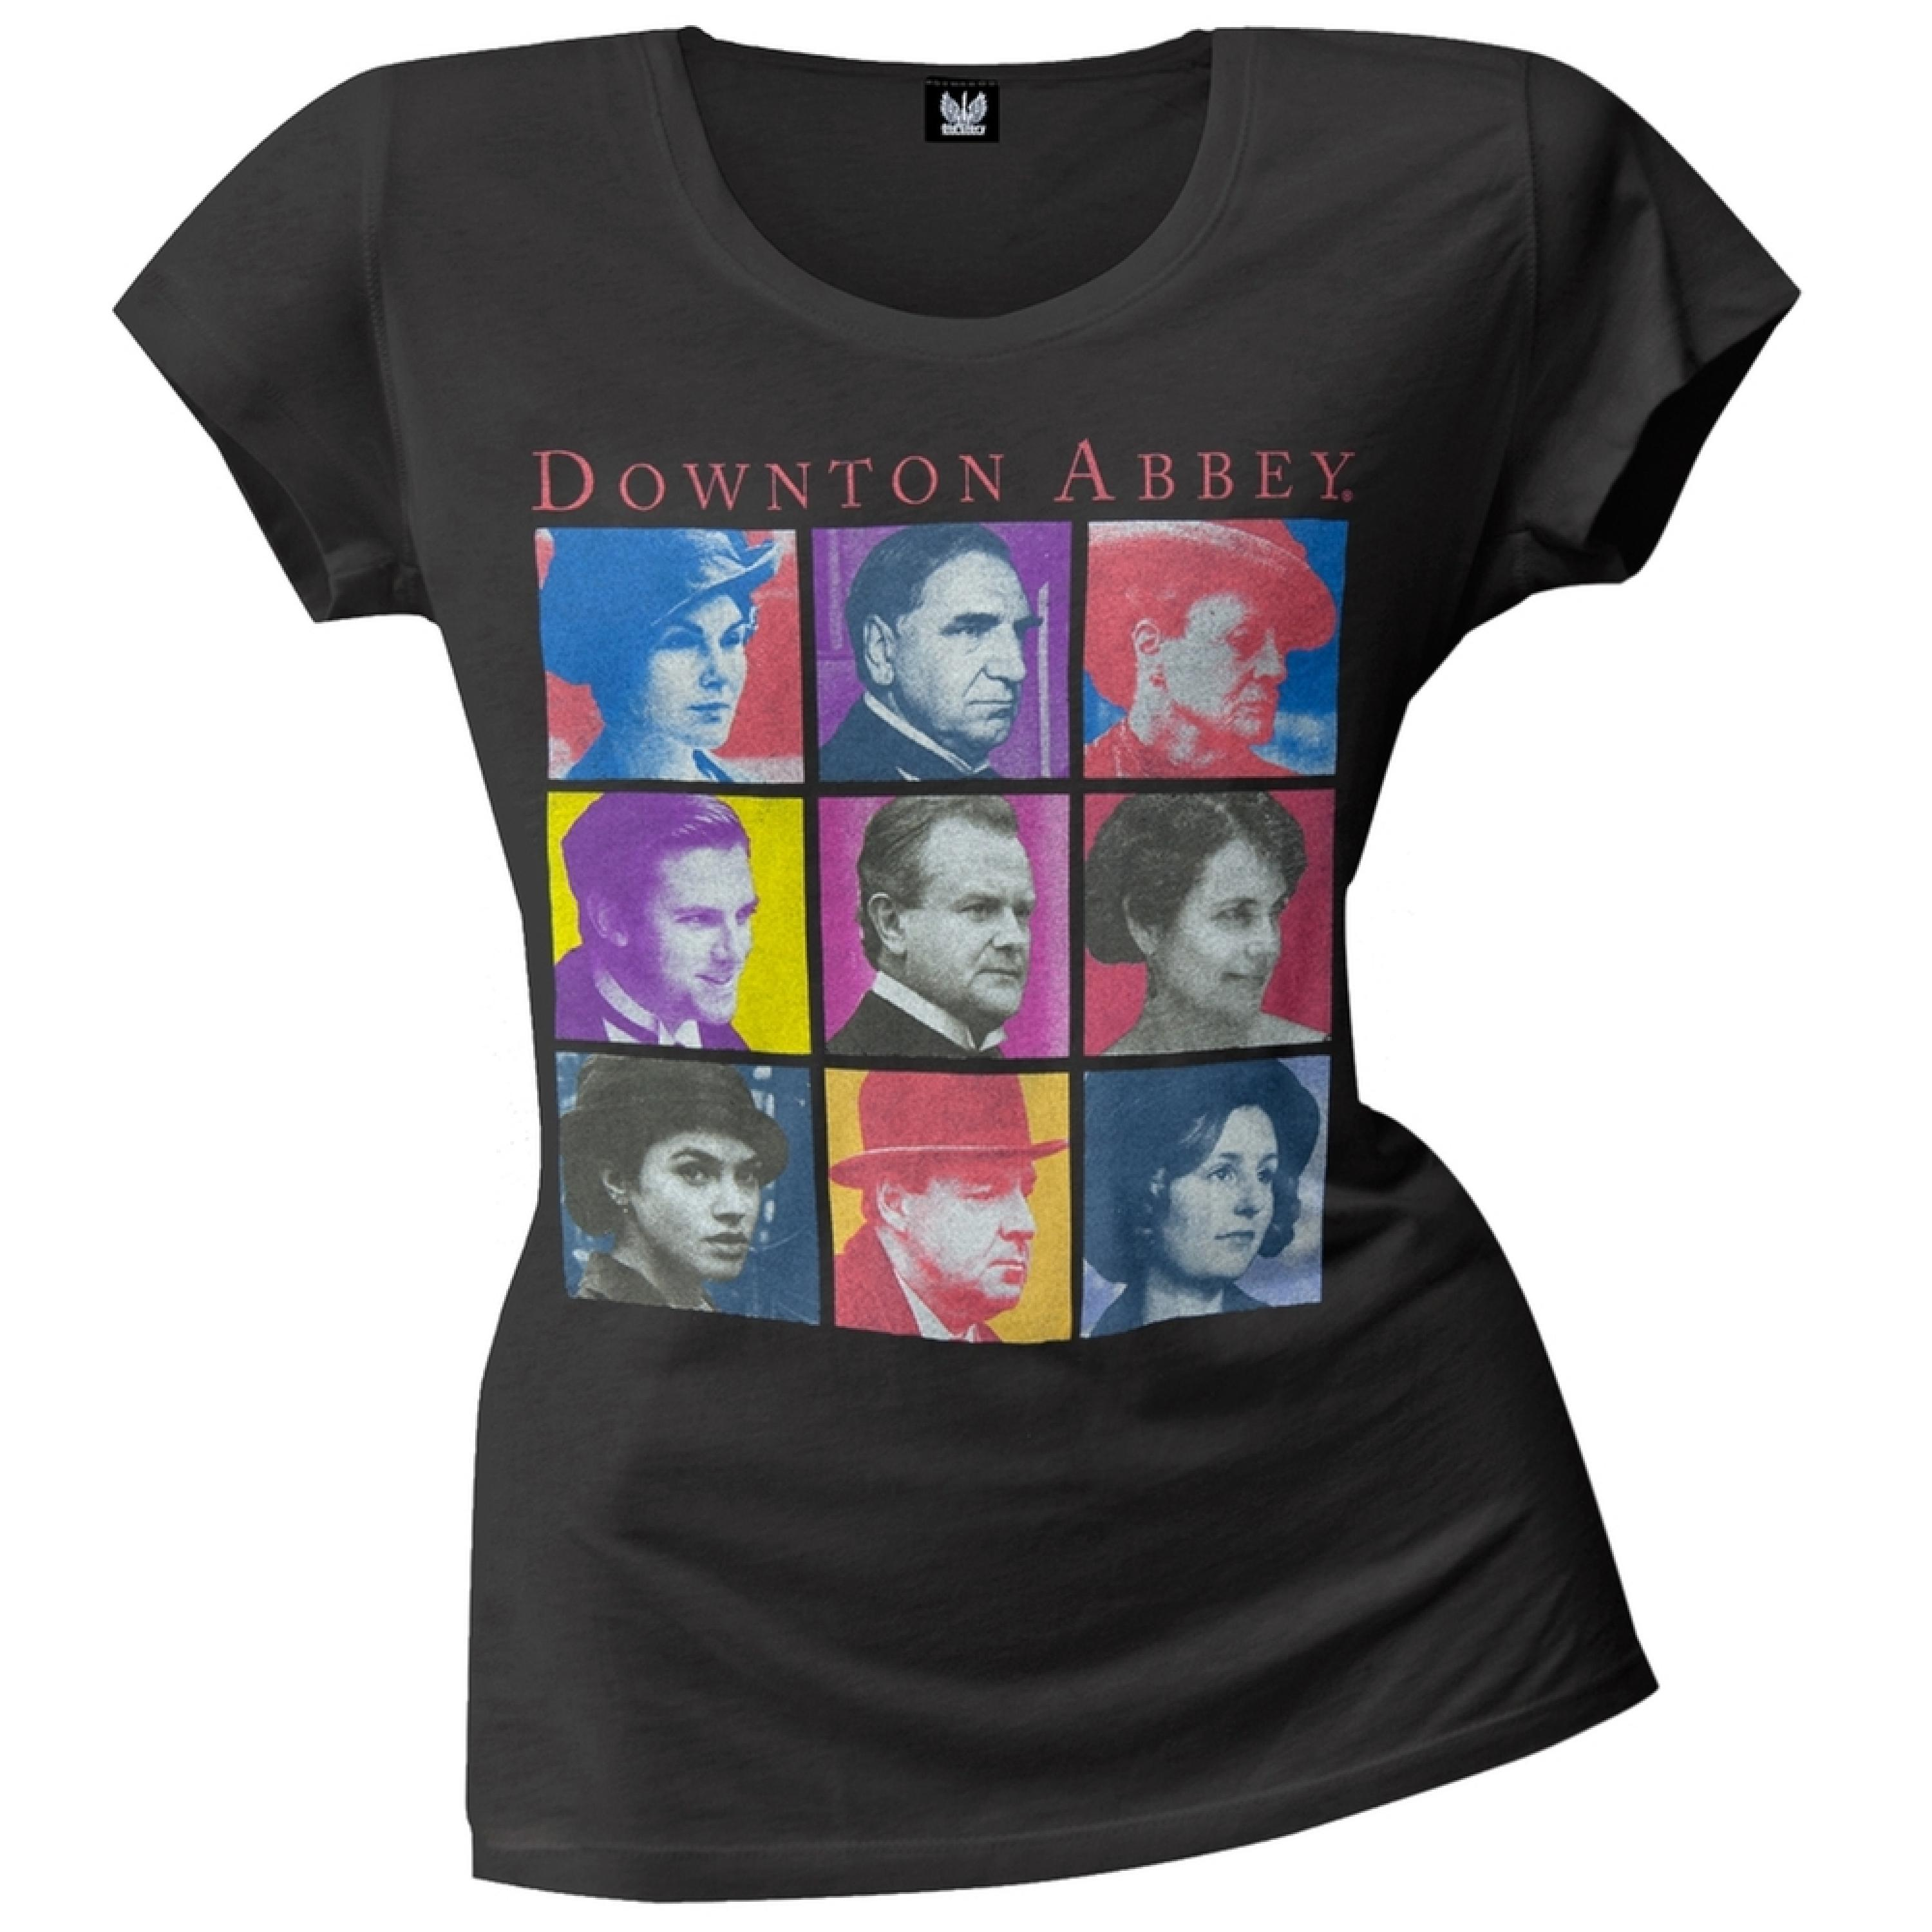 Downton Abbey - The Crew Juniors Dolman T-Shirt